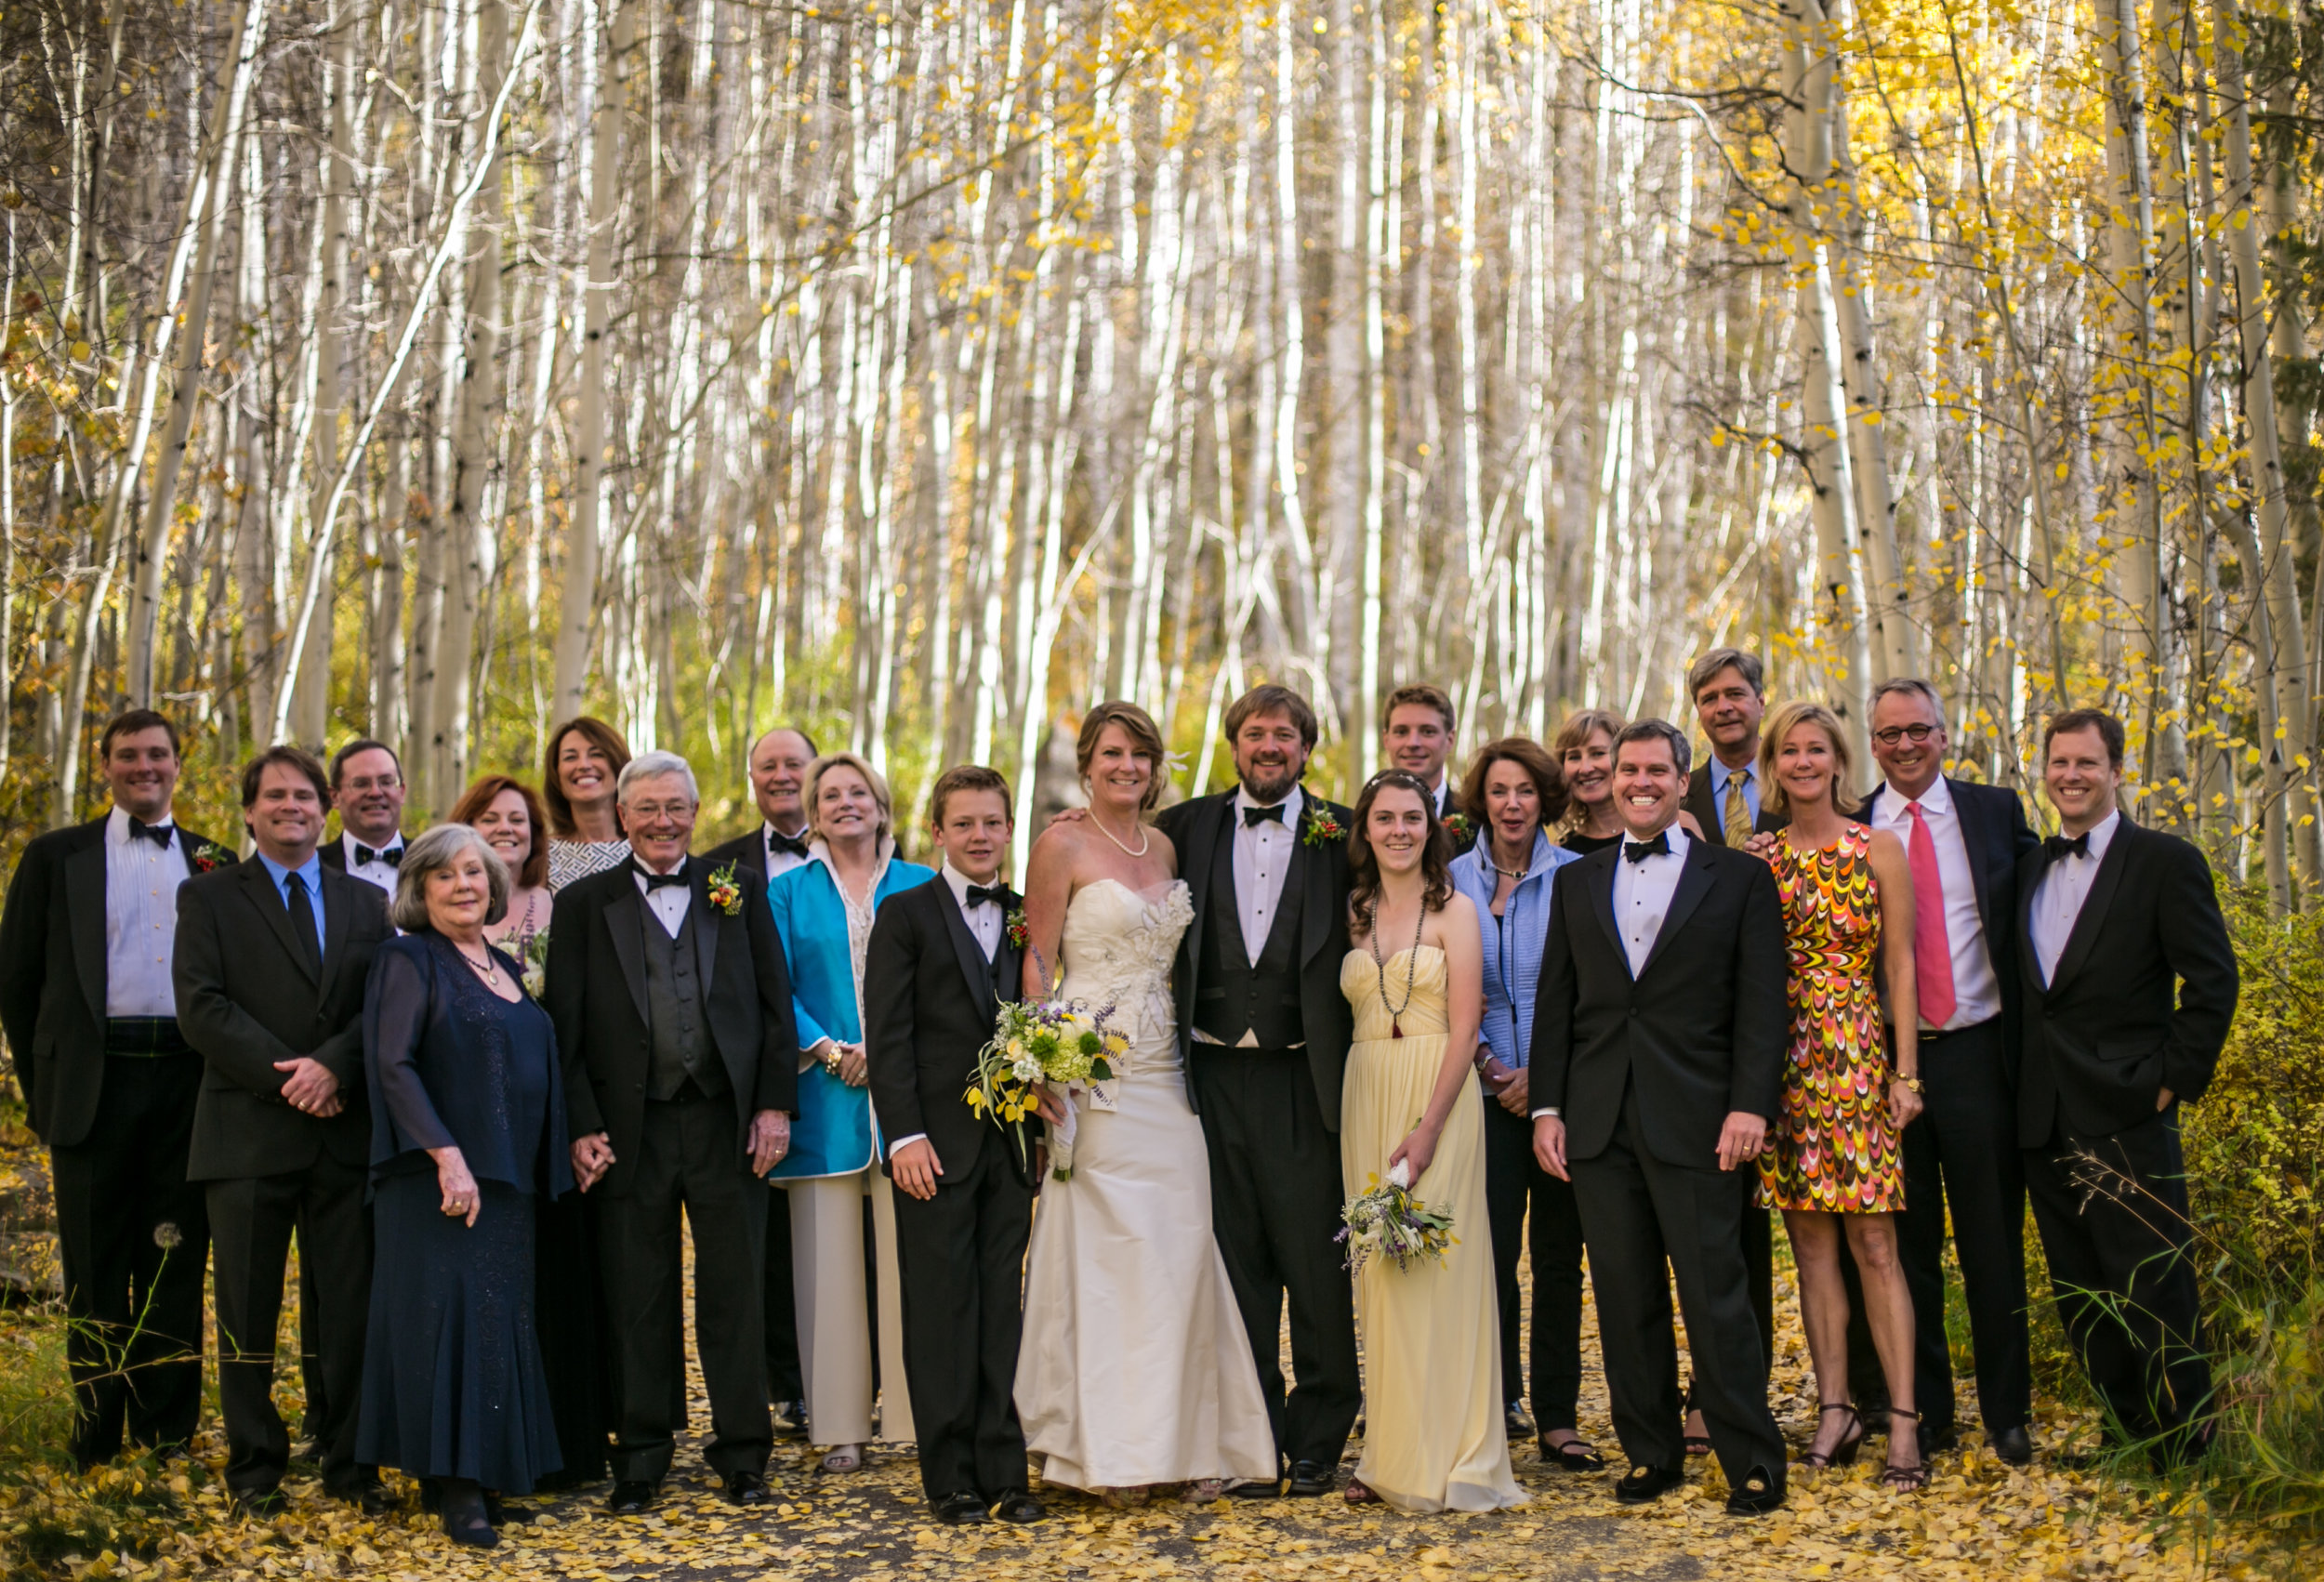 Rediker_Newburywedding_lockman_2015-98.jpg